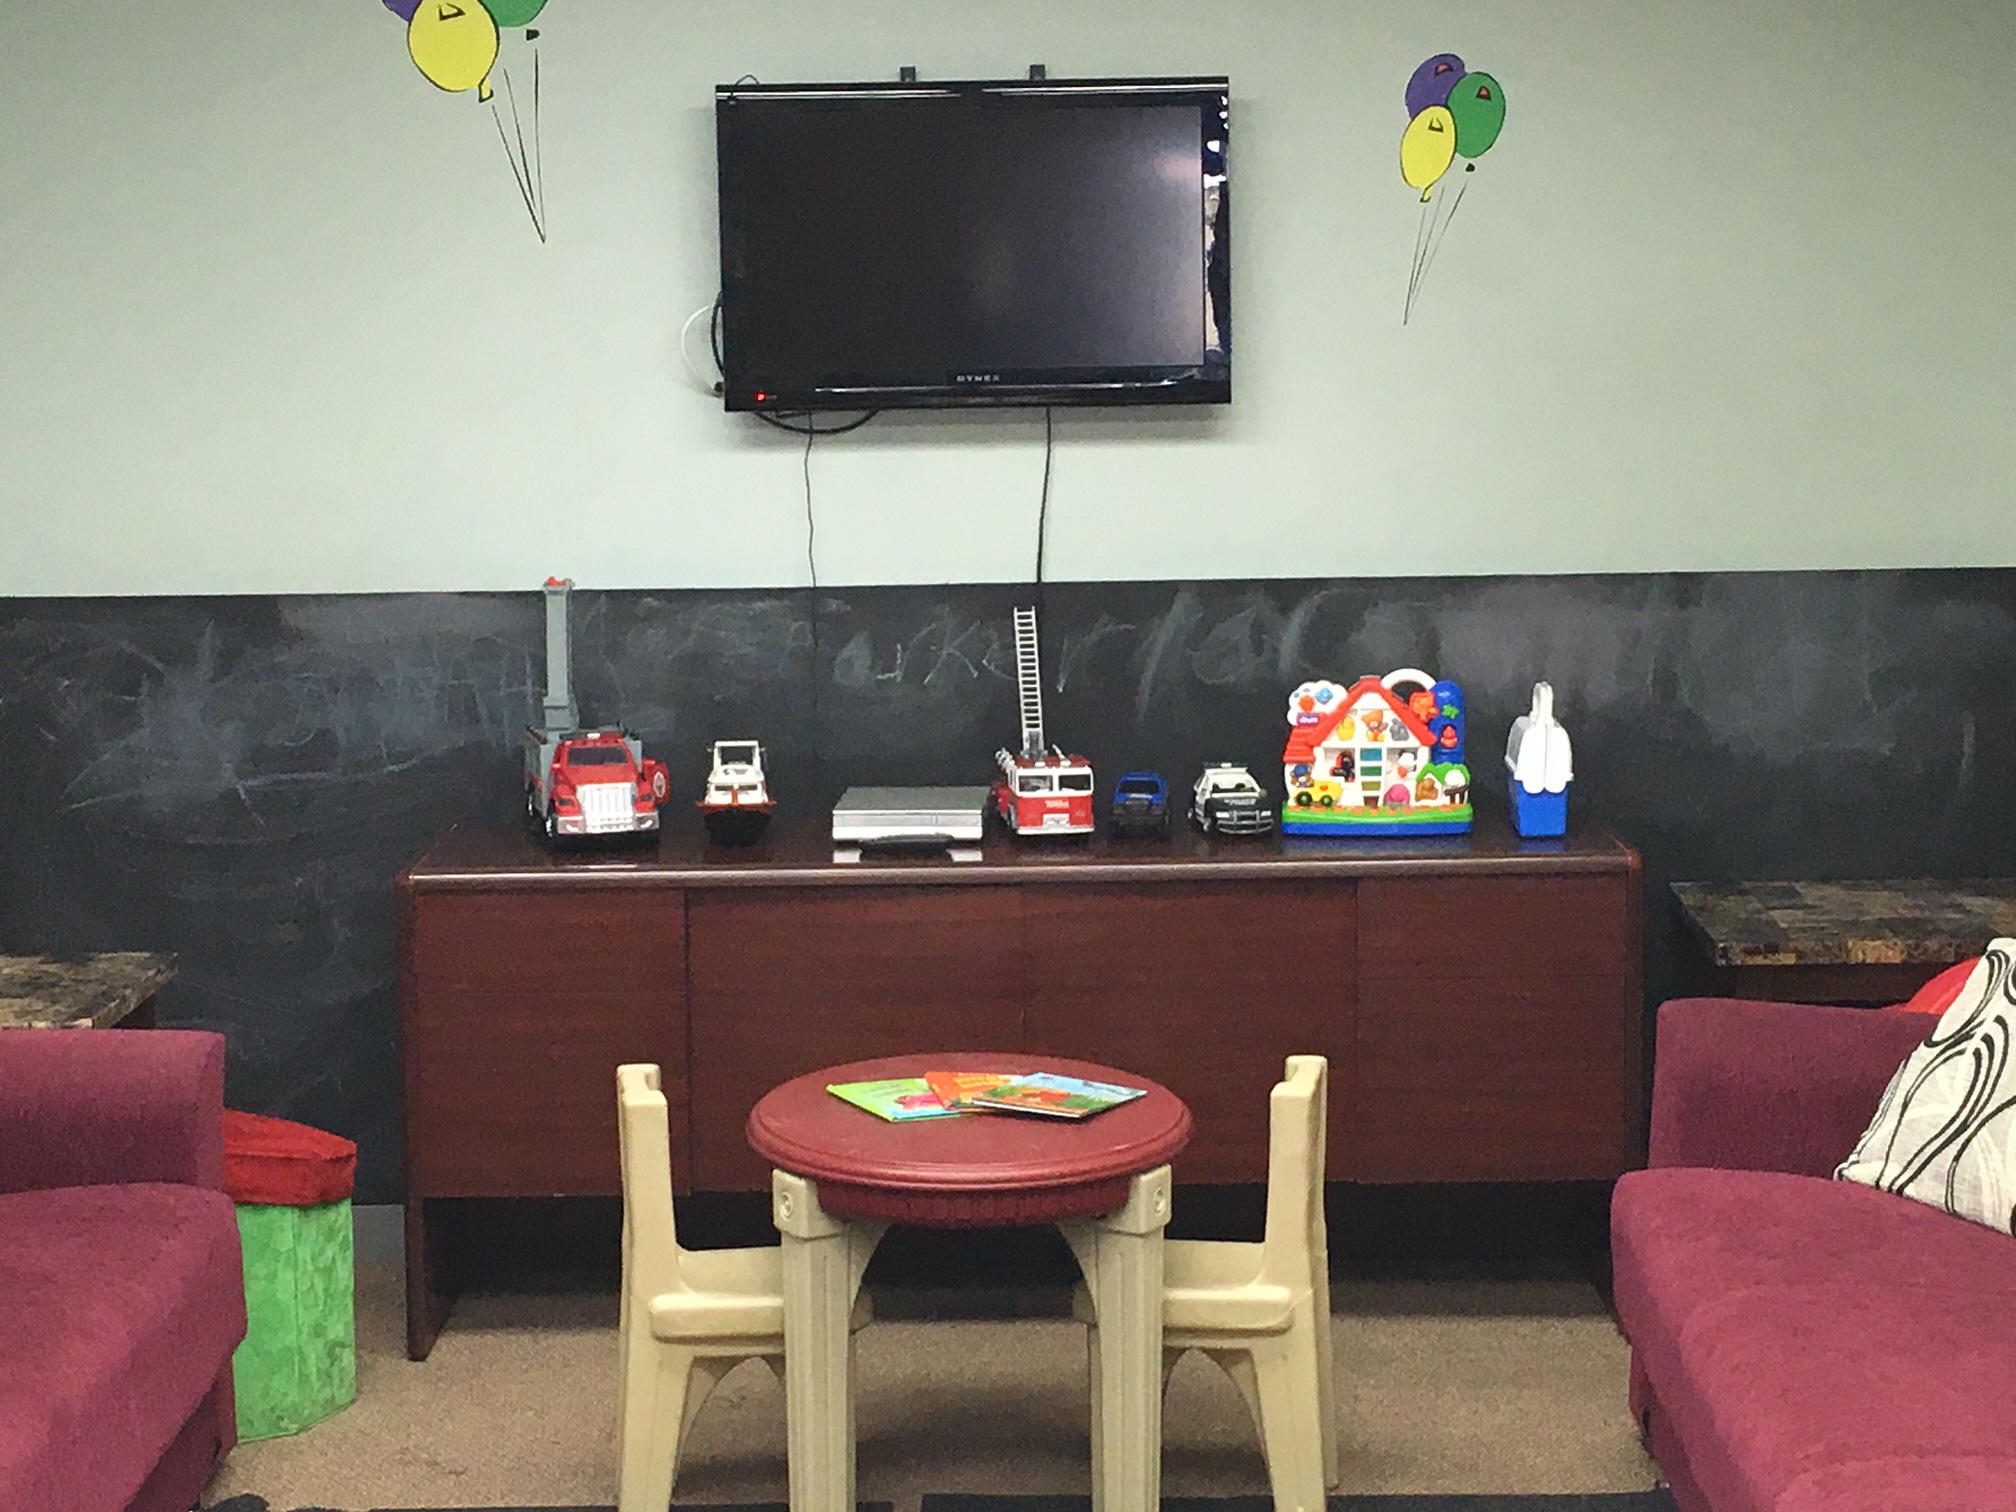 Entertain The Kids While Your Wait With Our Kid's Playroom!